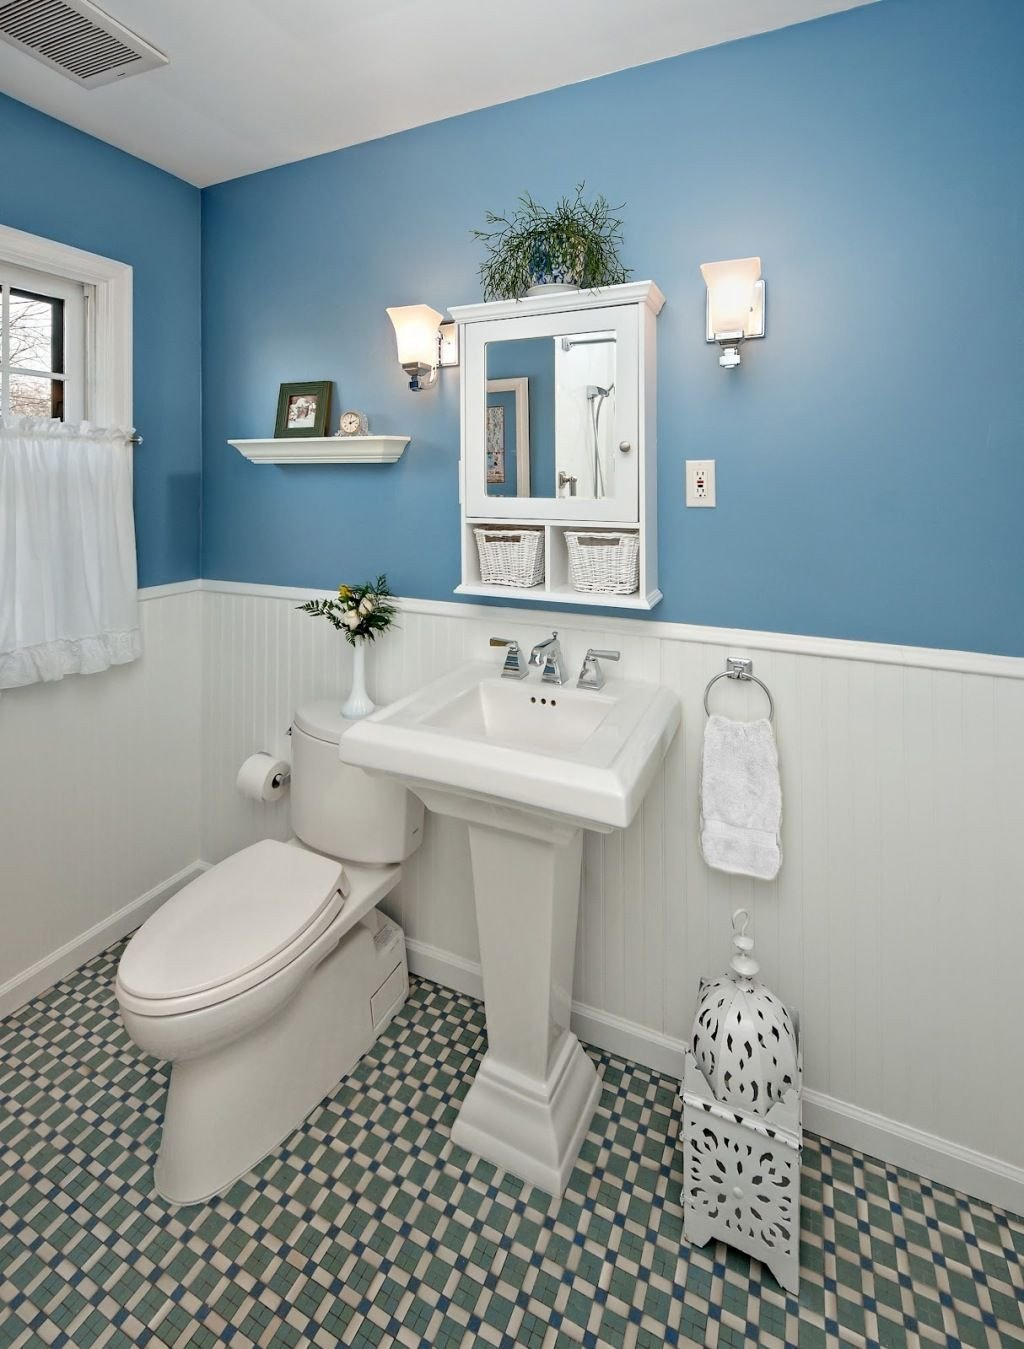 Blue and White Bathroom Decor Lovely Chic Bathroom Design with Two Color Bination Cadet Blue and White with Beauty Mirror Framing